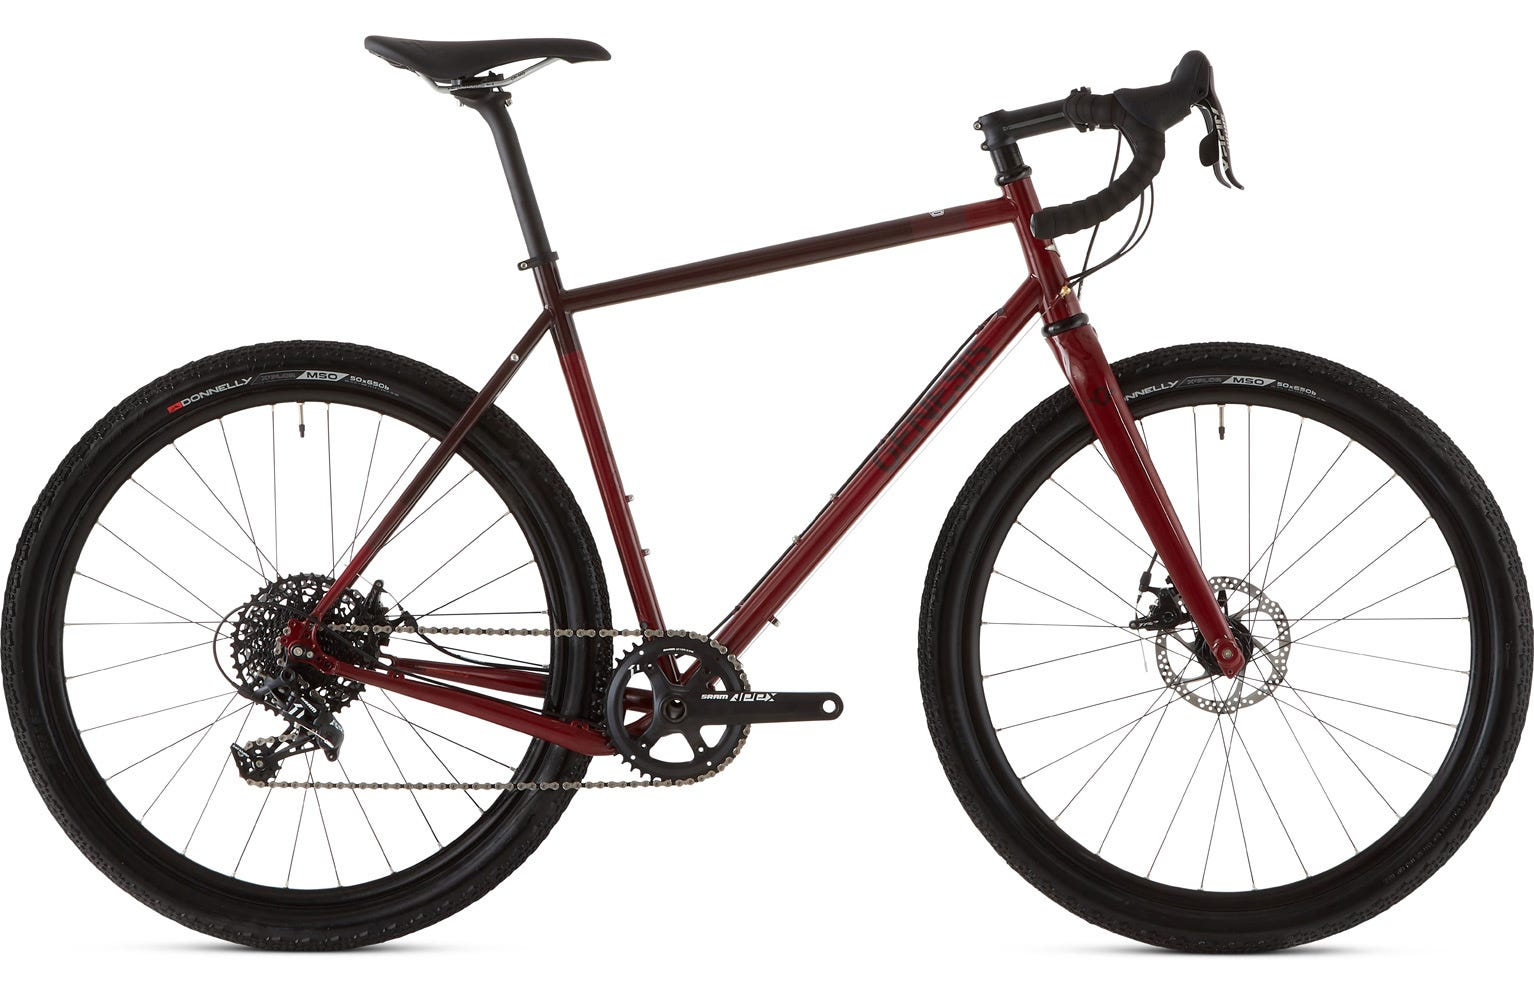 Genesis 2019 Fugio 1x MD Bike sample (unused)